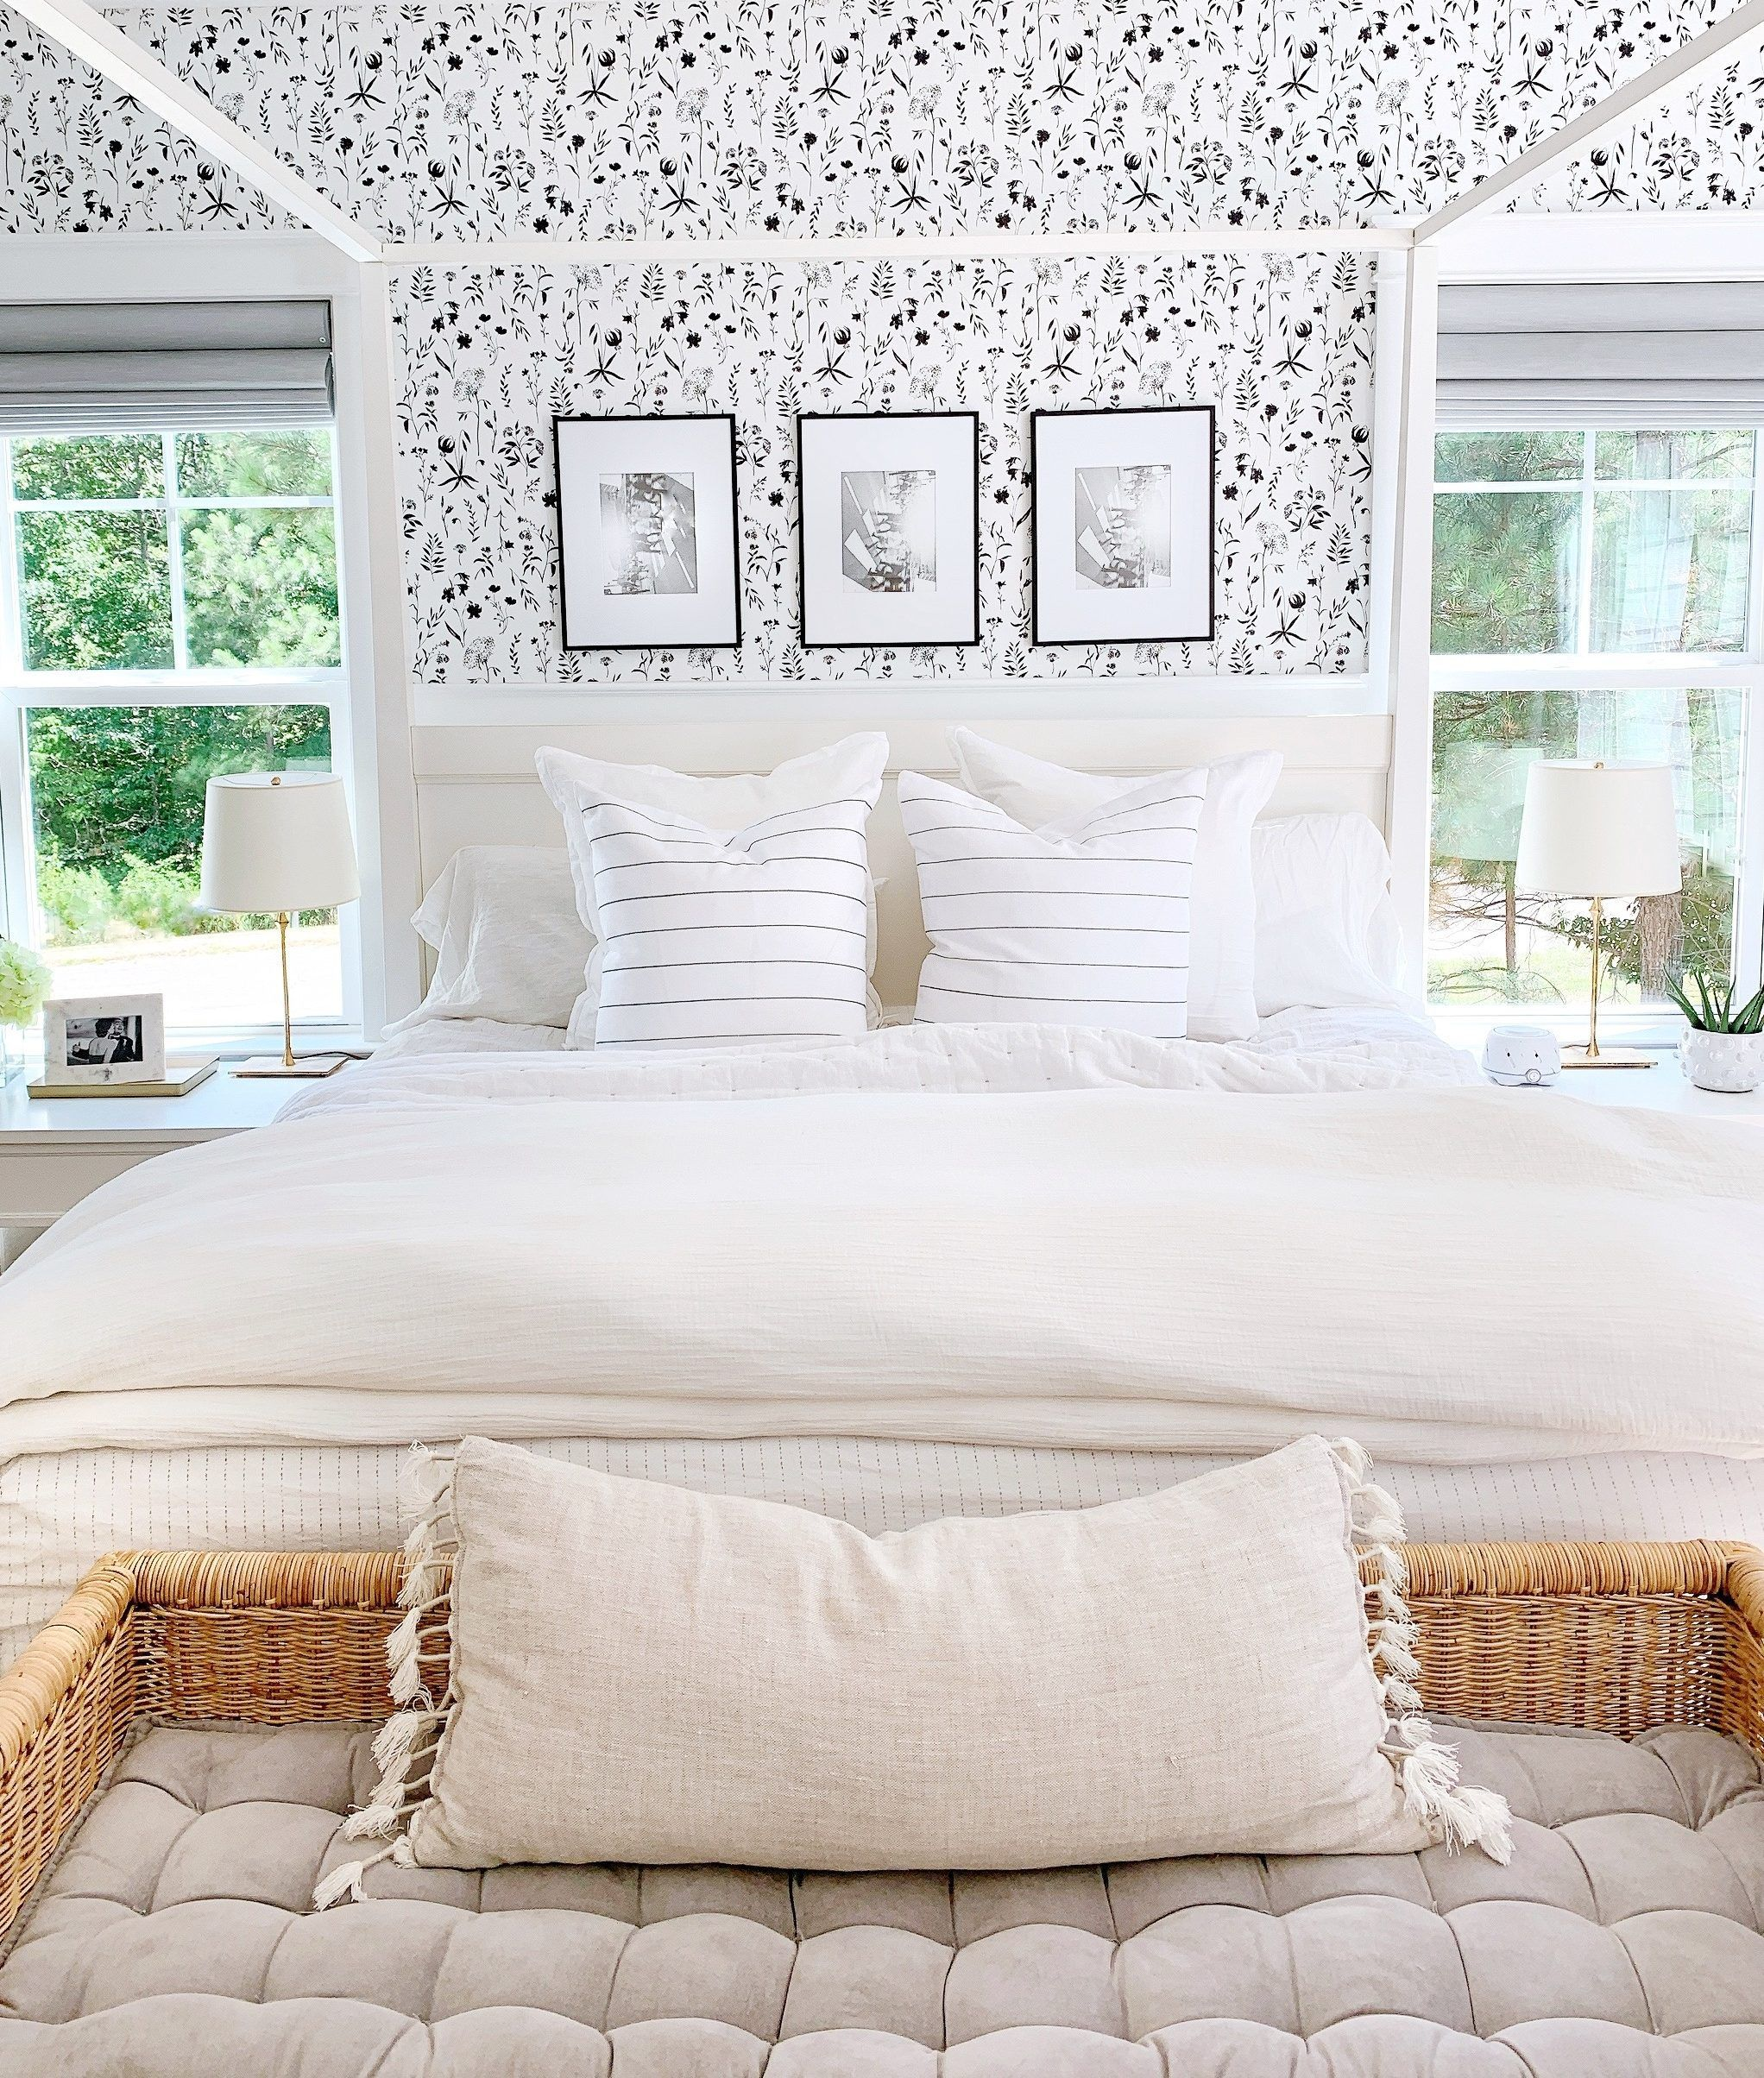 How To Hang Wallpaper For Total Beginners in 2020 How to